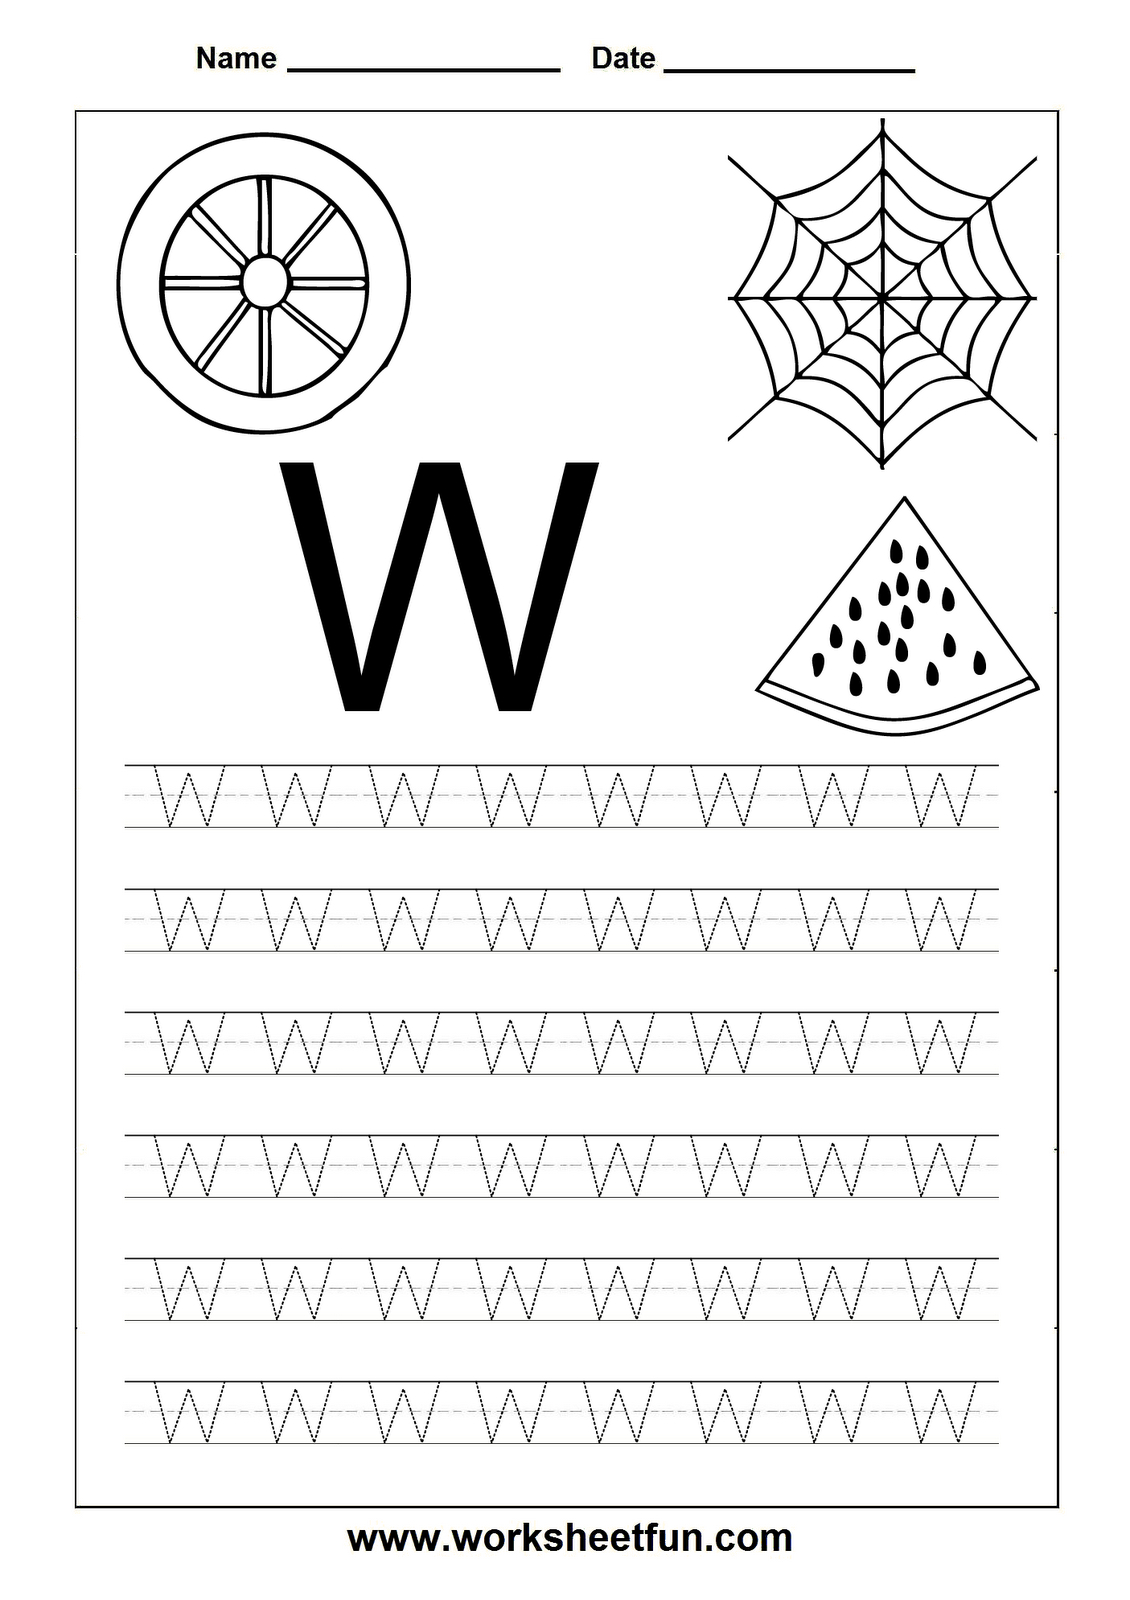 Free Printable Worksheets: Letter Tracing Worksheets For within Letter W Tracing Page